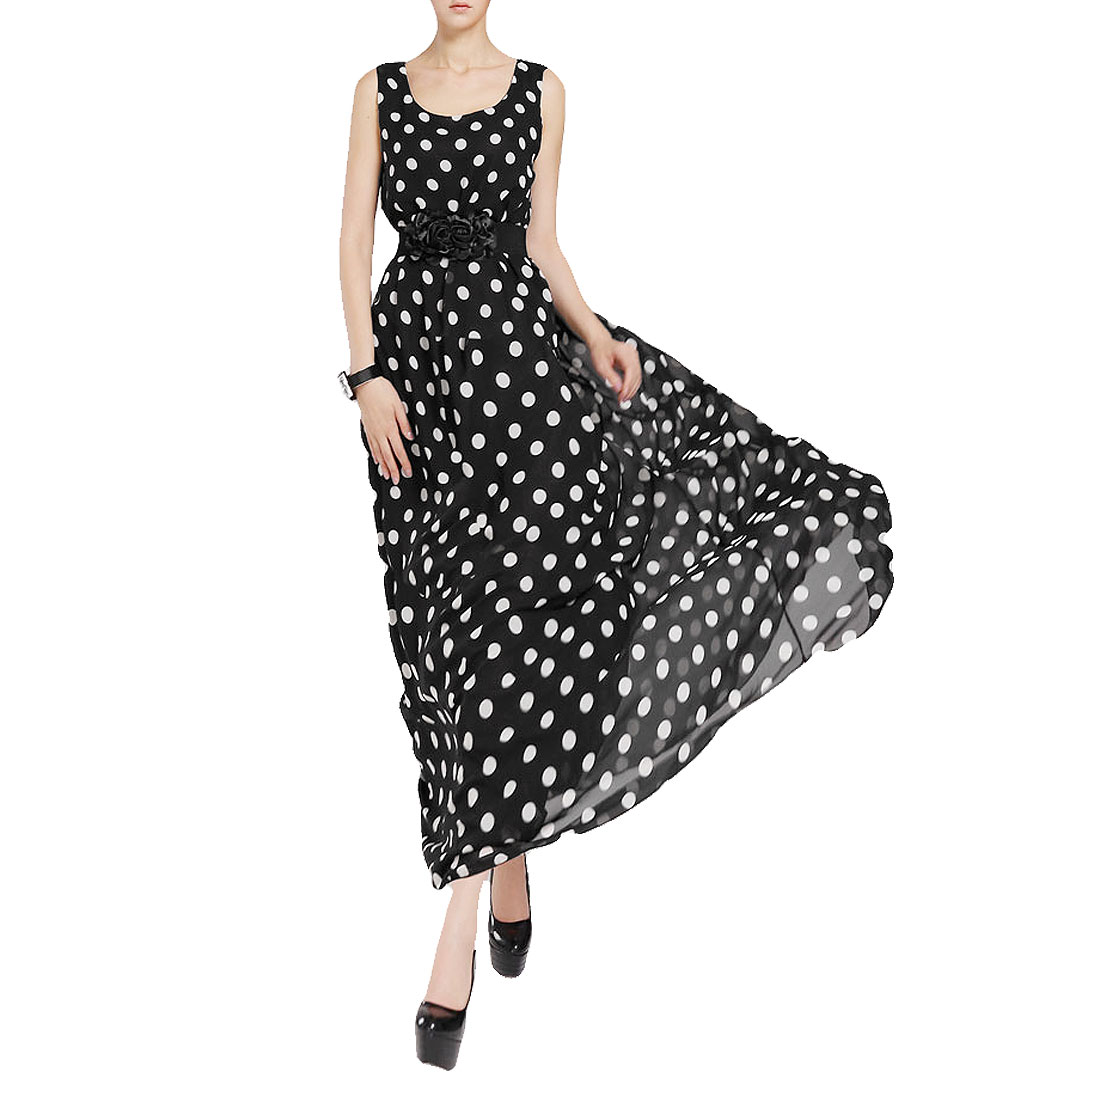 Women Round Neck White Dots Print Black Chiffon Tank Dress S w Cinch Belt